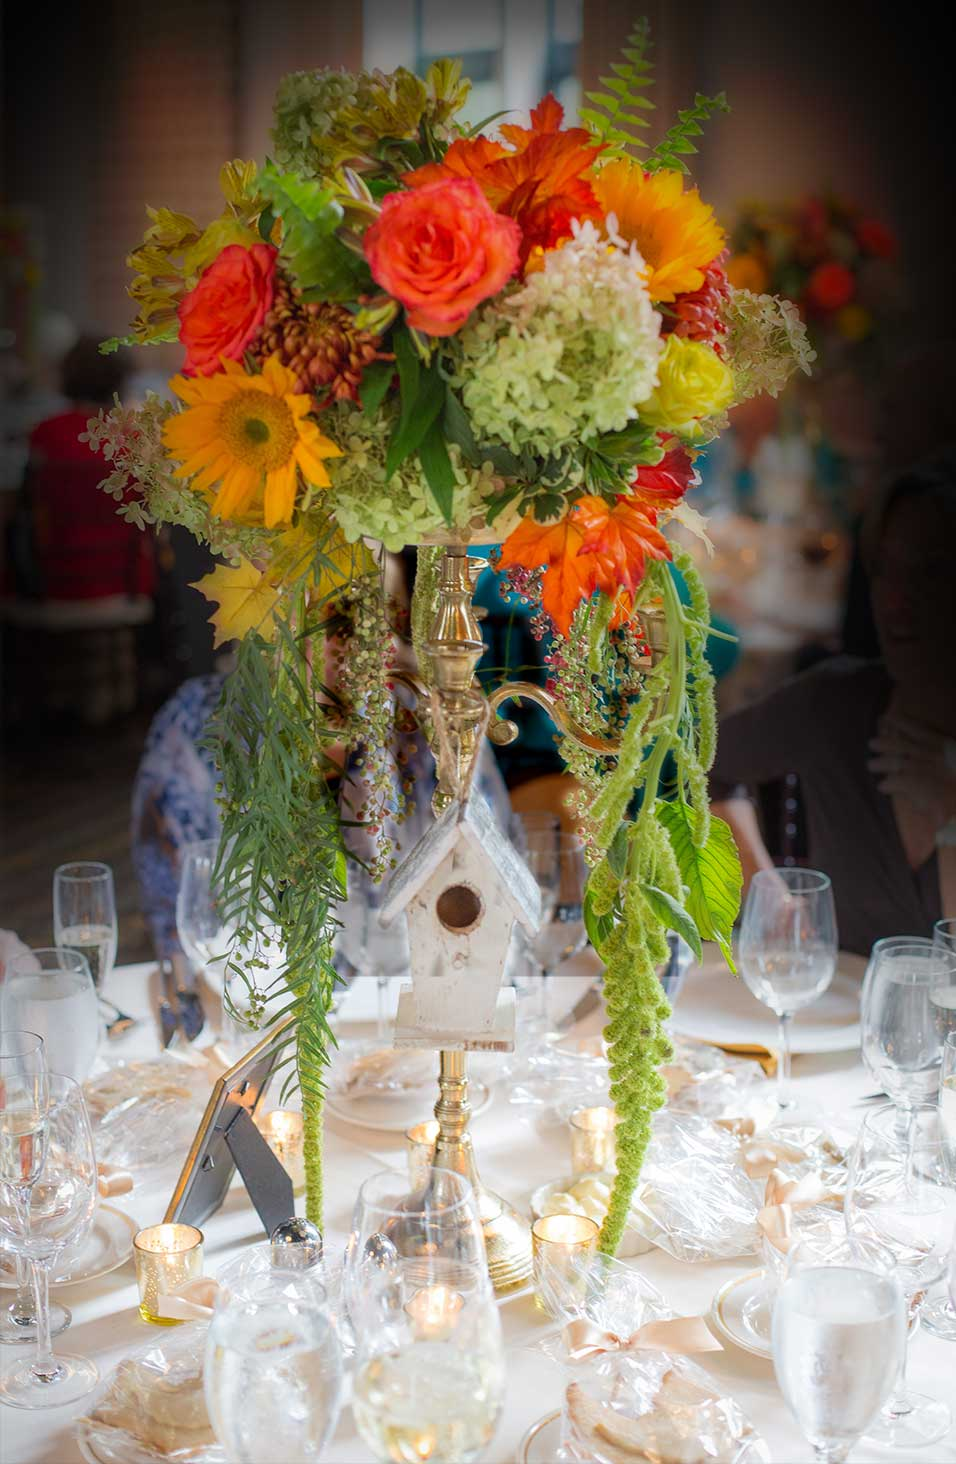 Birdhouse Themed Floral Centerpieces